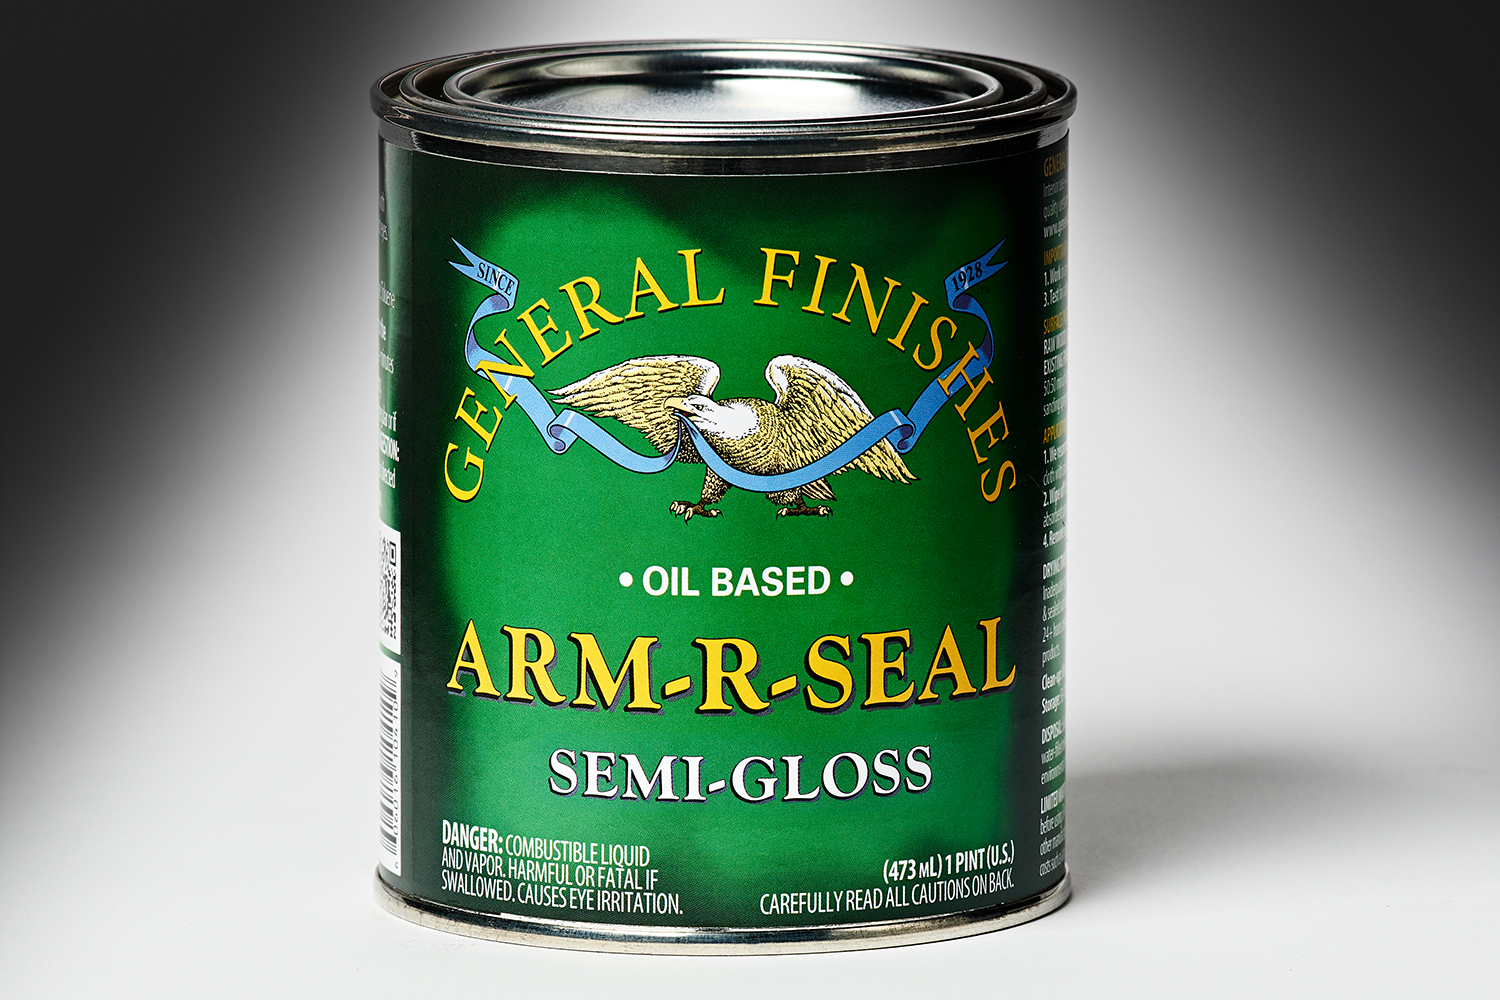 General Finishes Semi-Gloss Arm-R-Seal Oil Based Topcoat